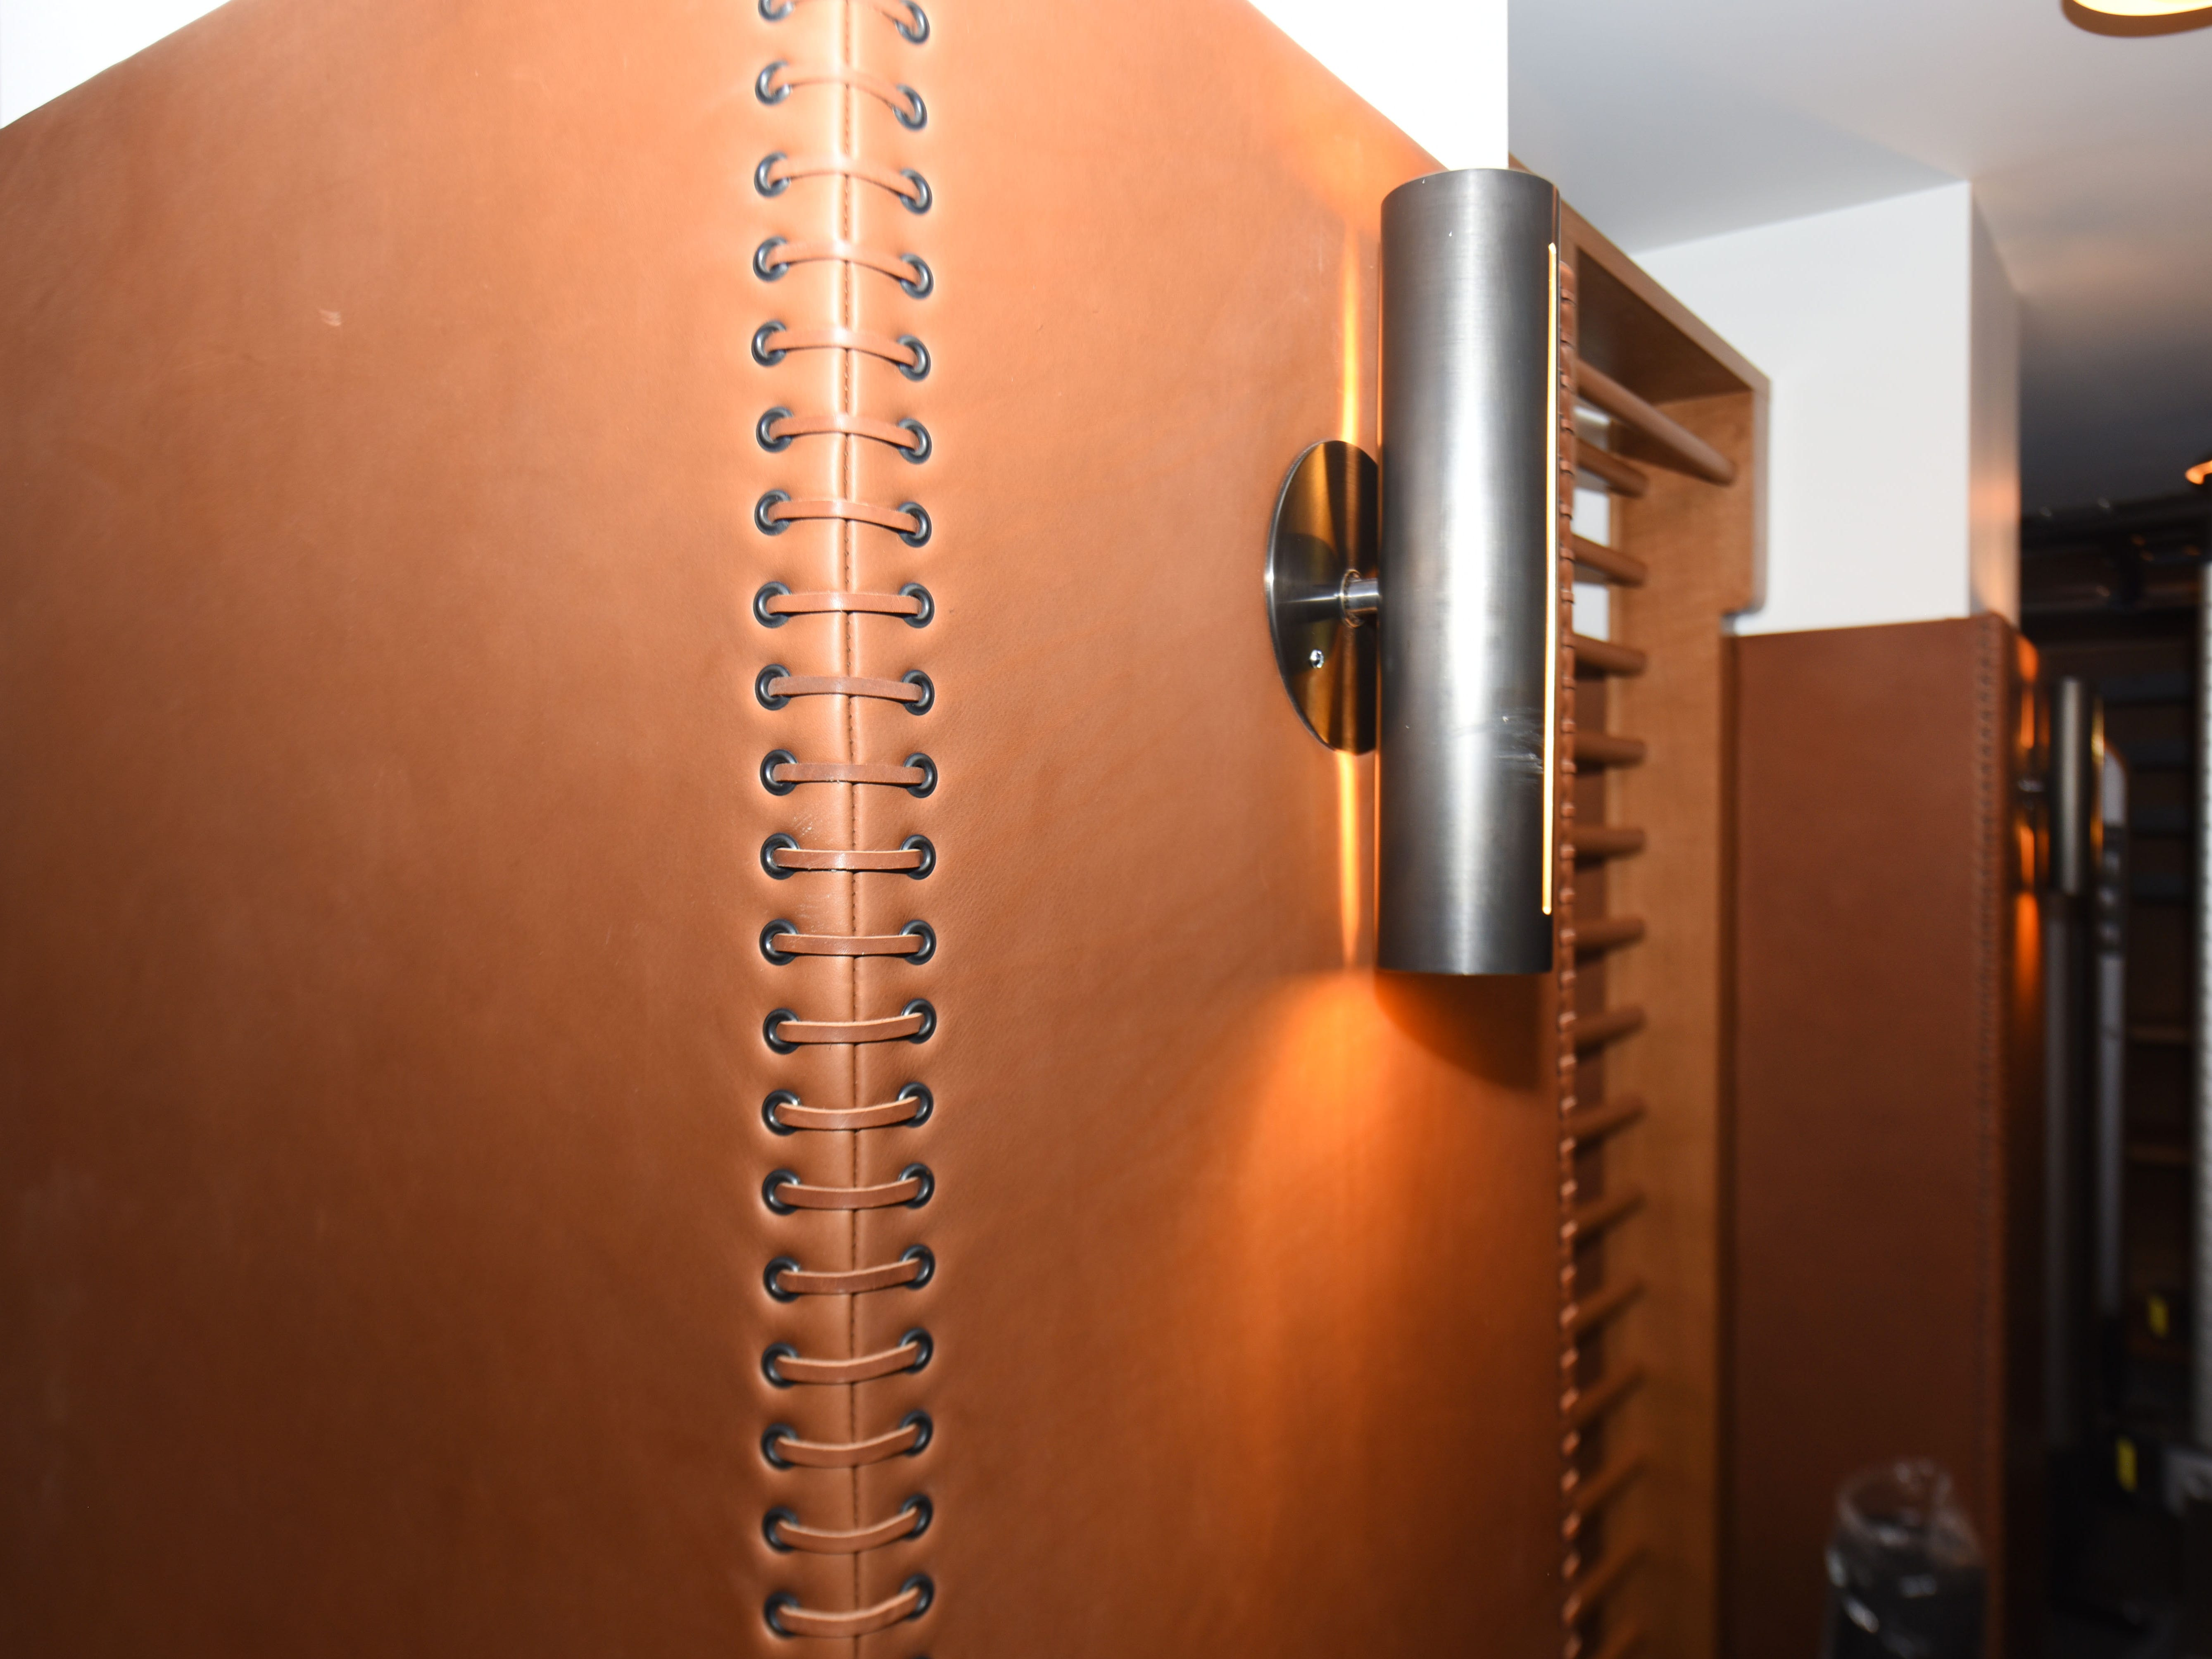 Leather covering and stitching cushion the pillars in the exercise and fitness center.